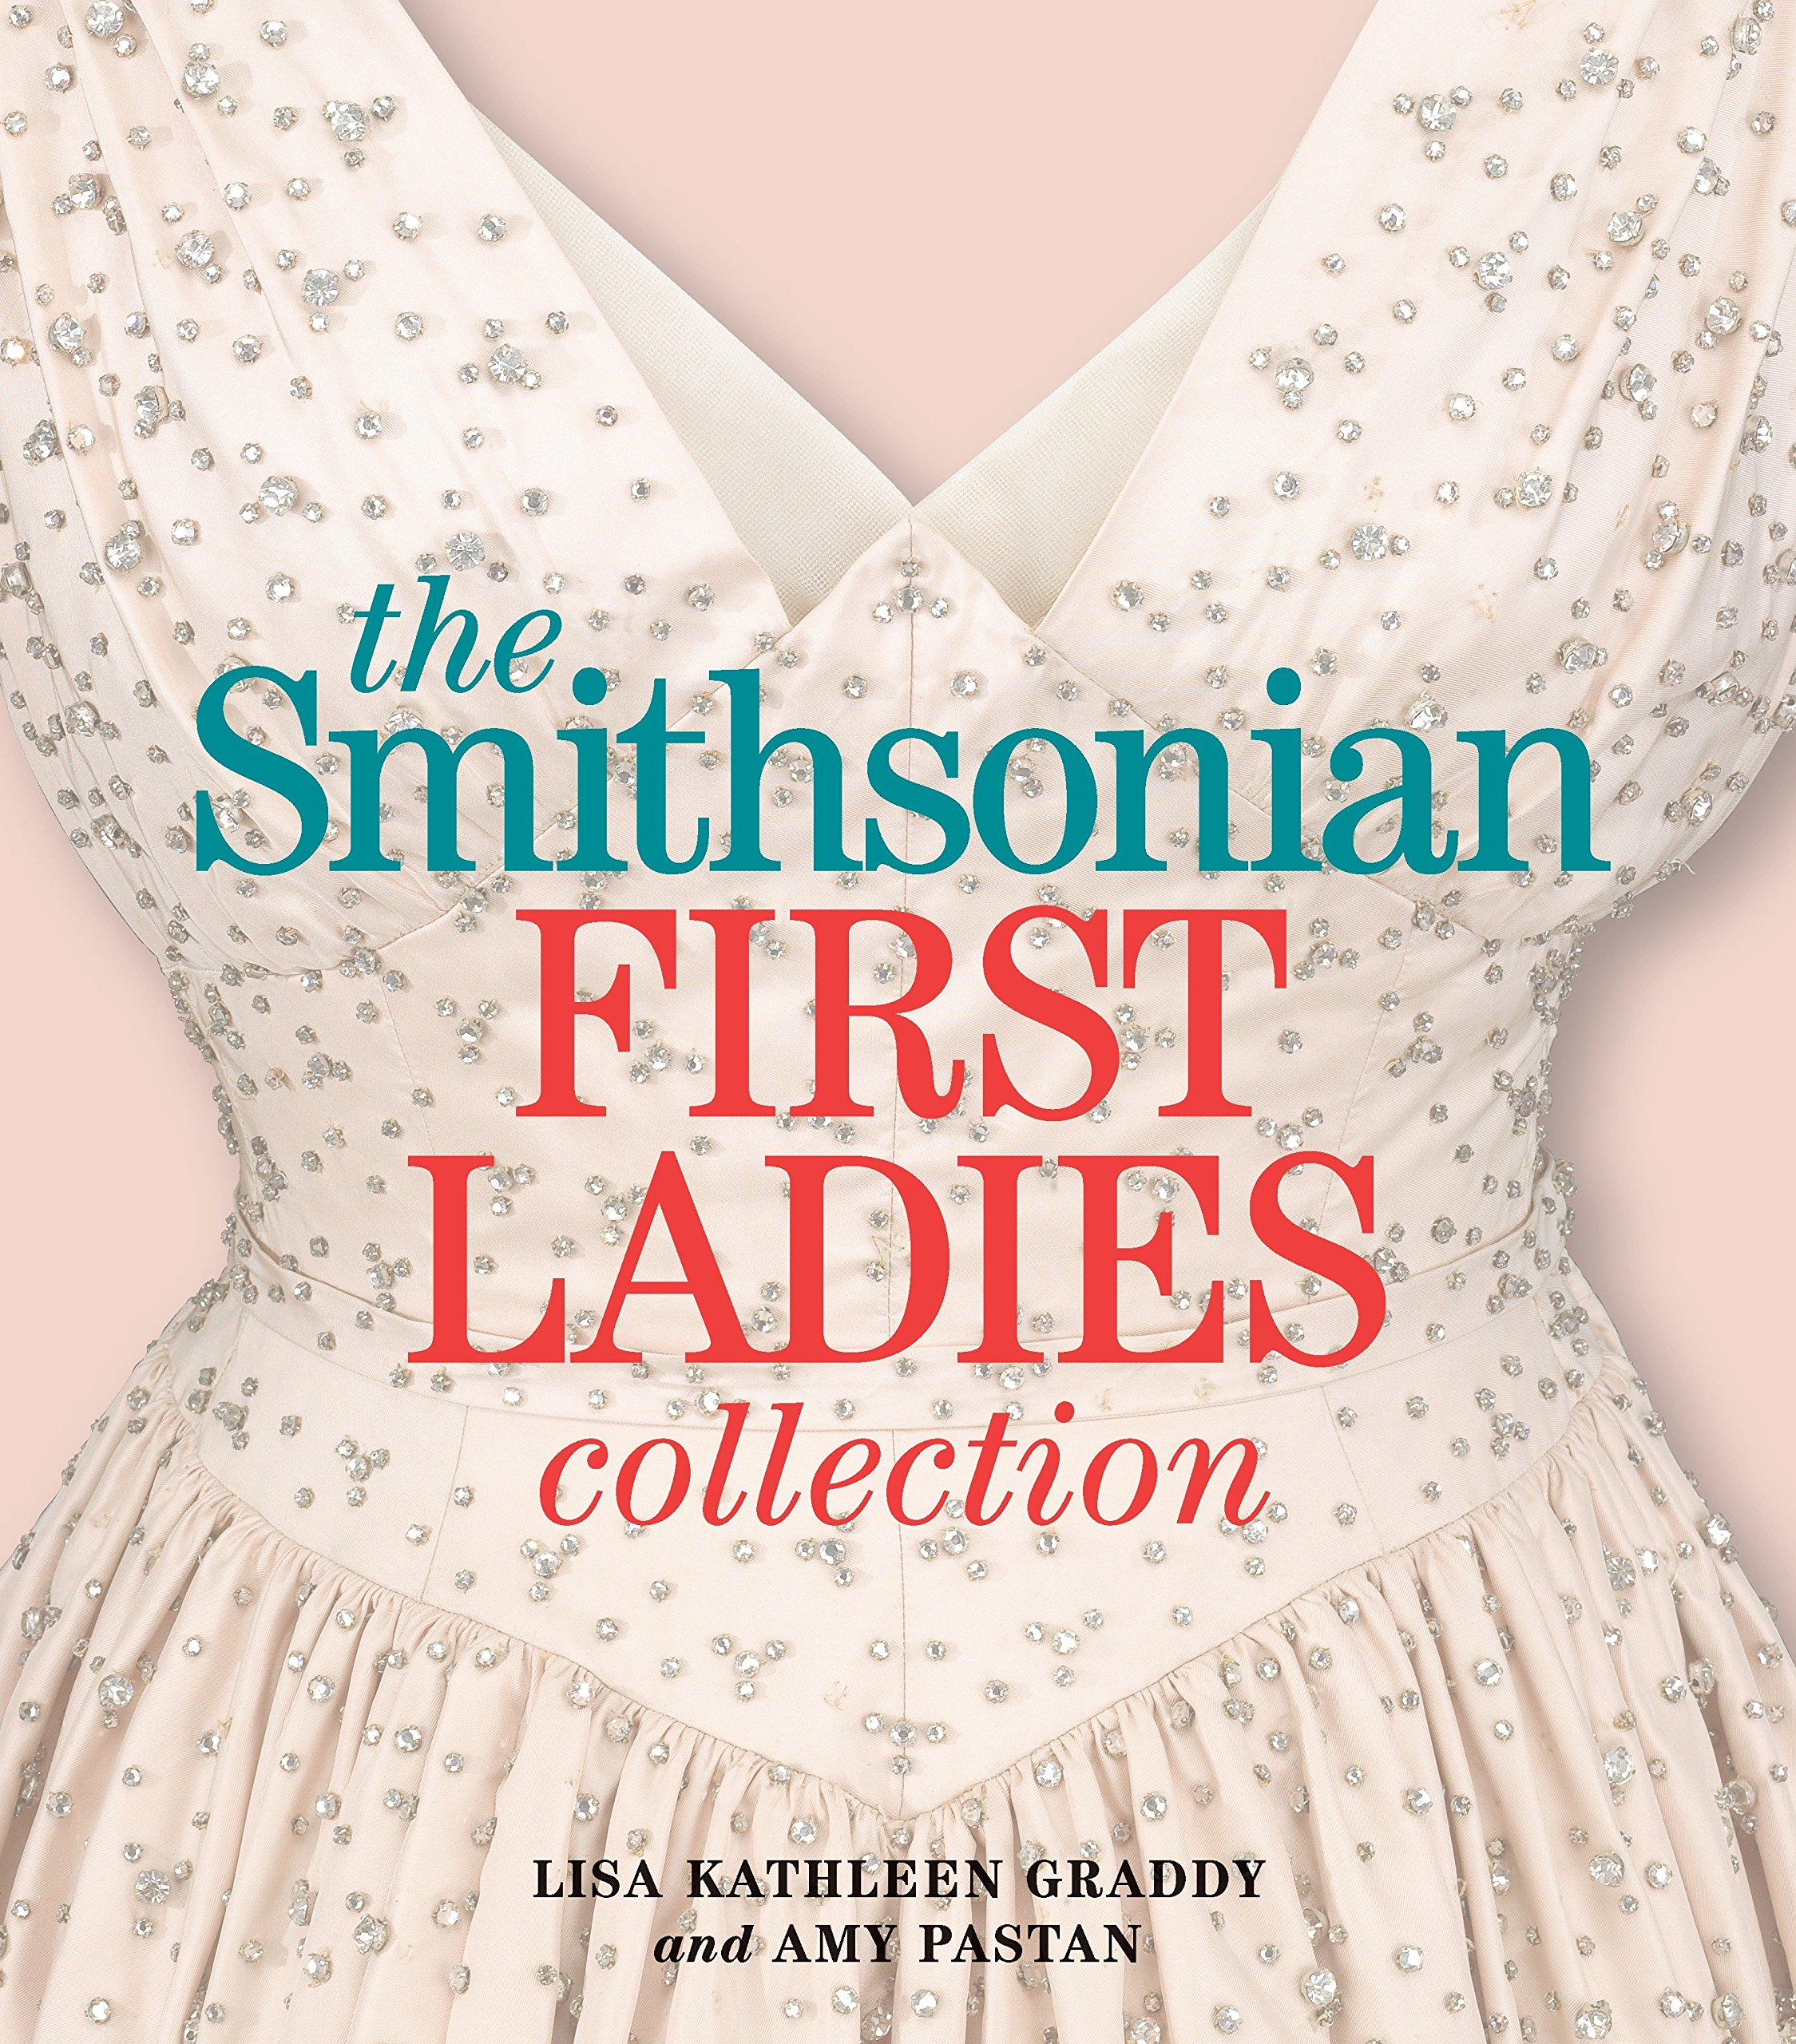 Amazon.com: The Smithsonian First Ladies Collection (9781588344694 ...